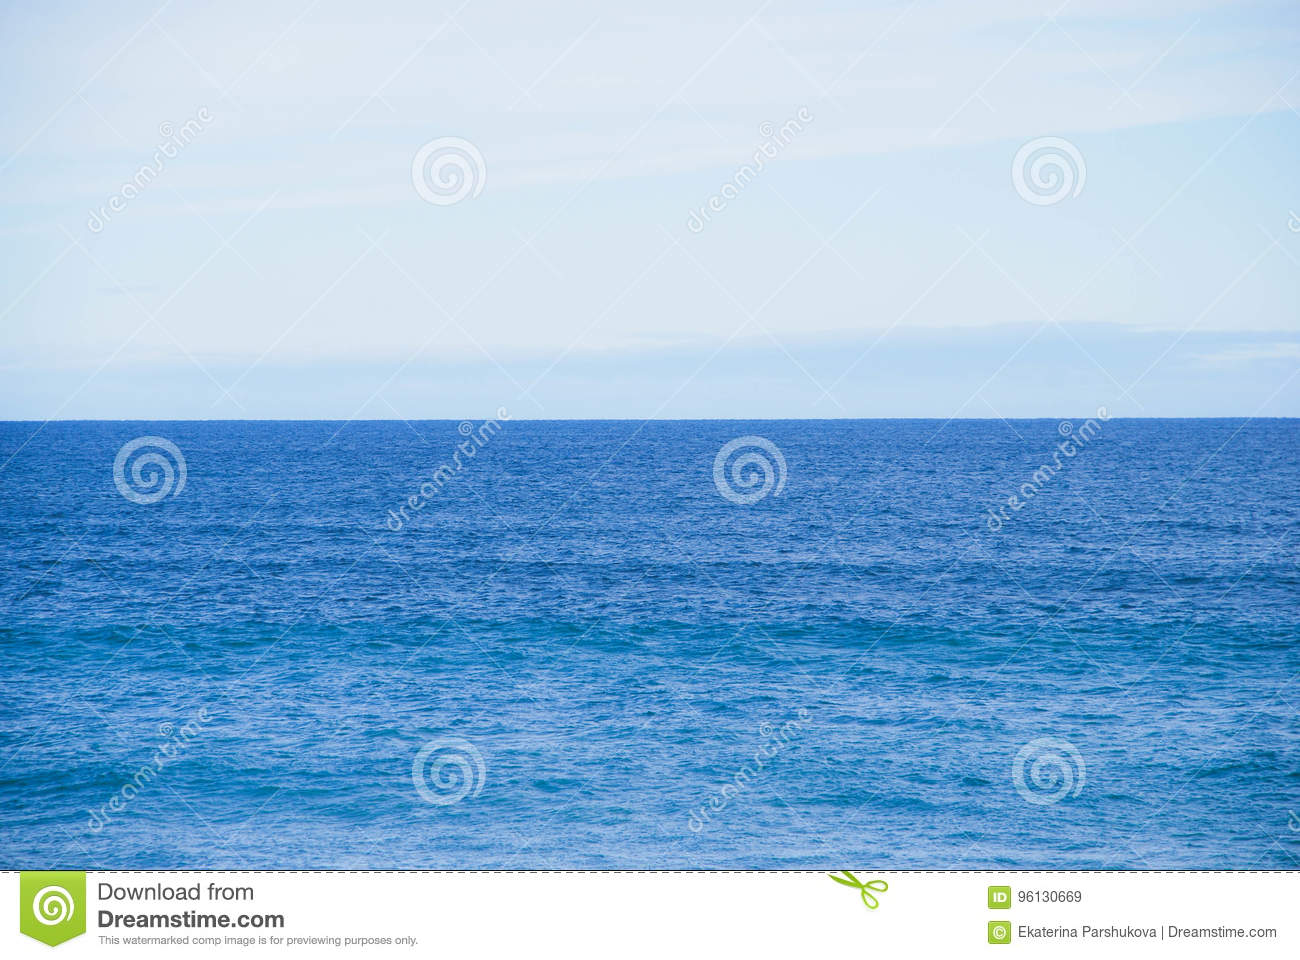 Still Ocean Horizon, No Waves, No Objects In View, Straight Water